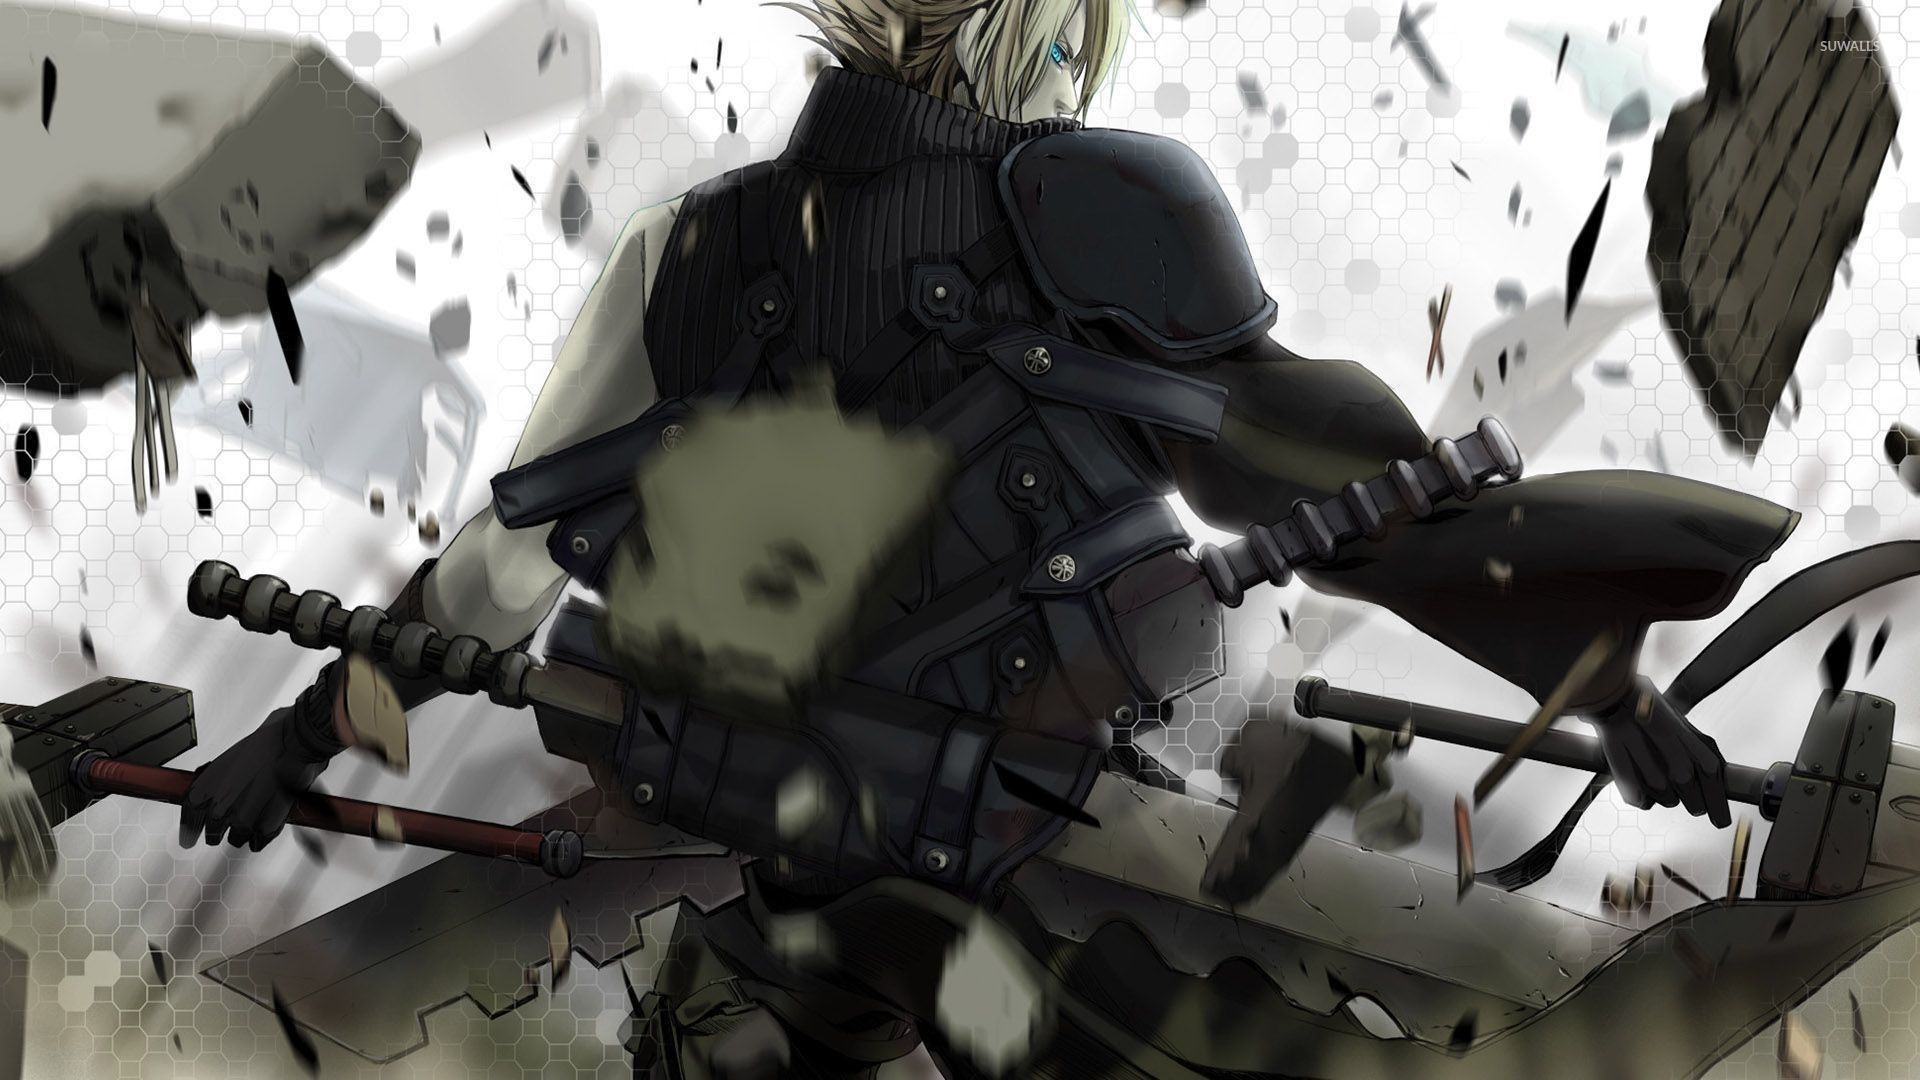 1920x1080 Cloud Strife - Final Fantasy VII wallpaper